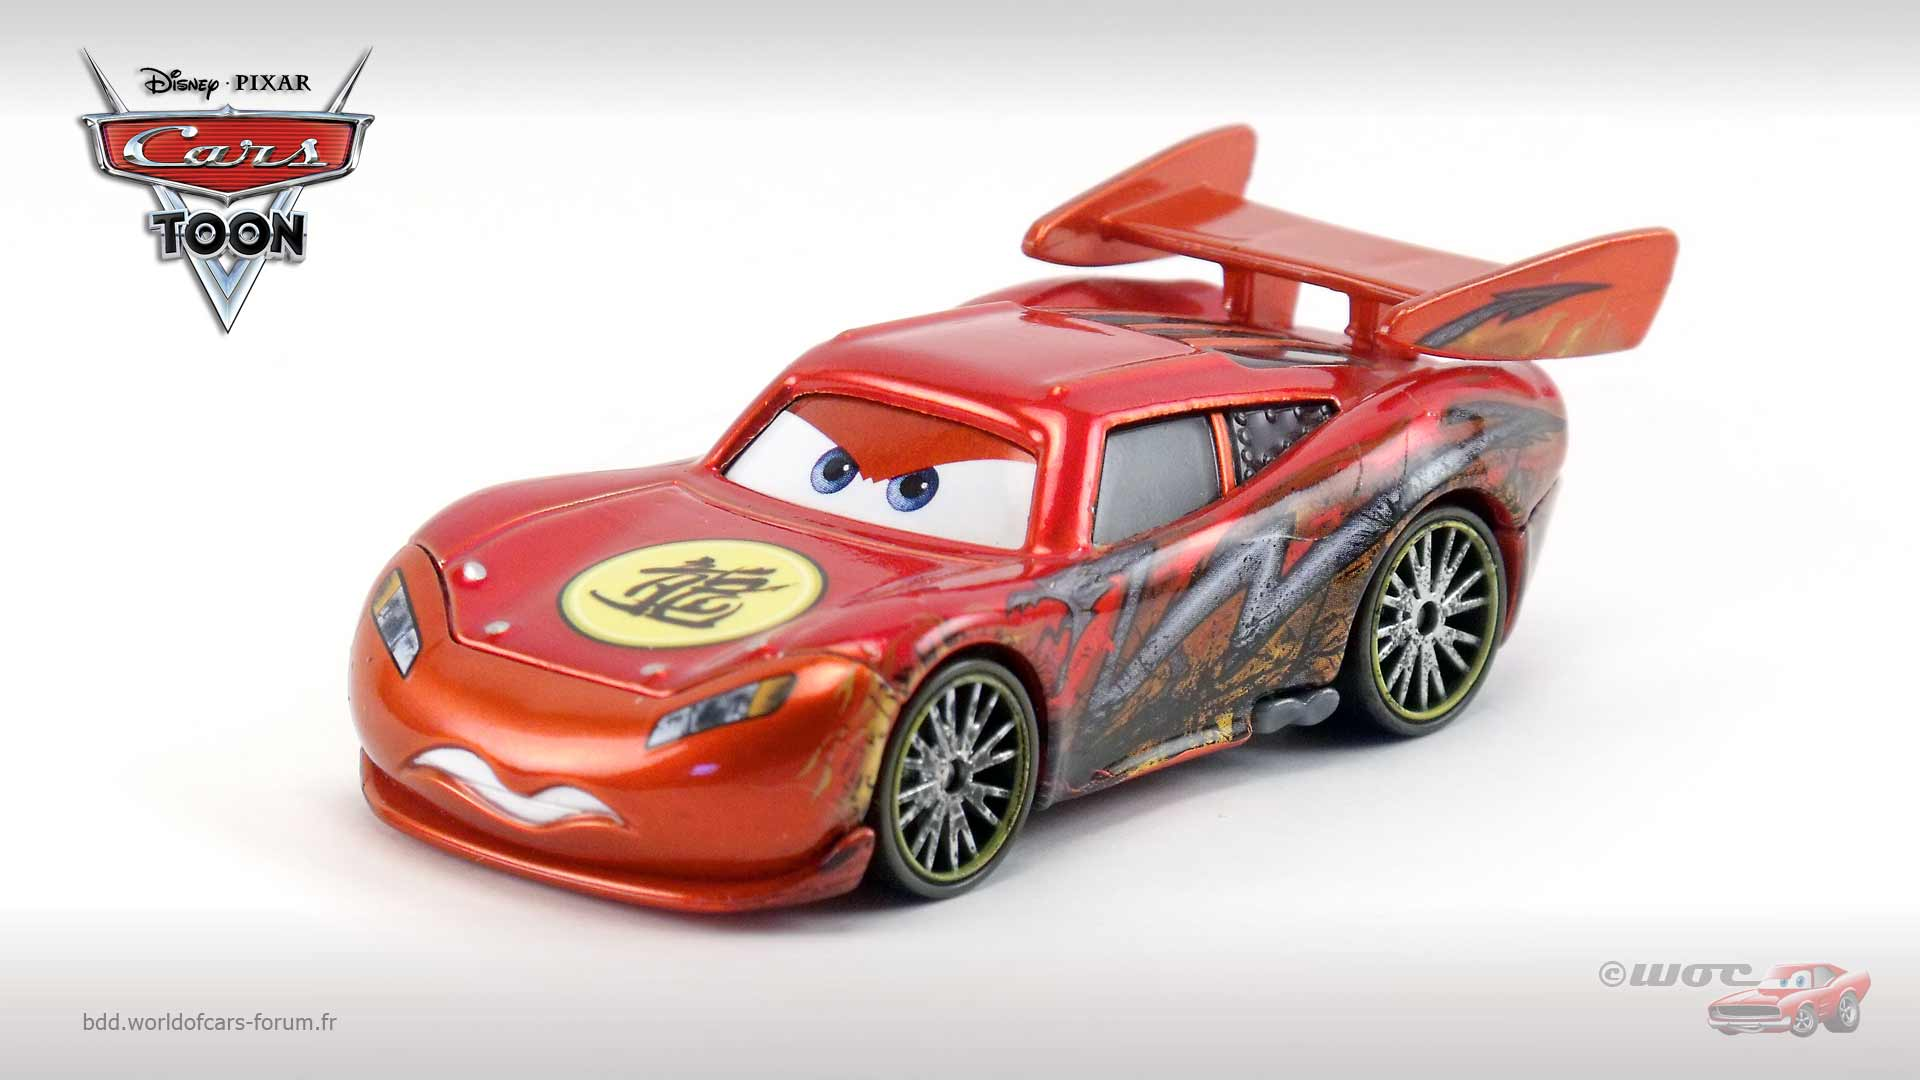 Dragon Lightning McQueen with Metallic Finish